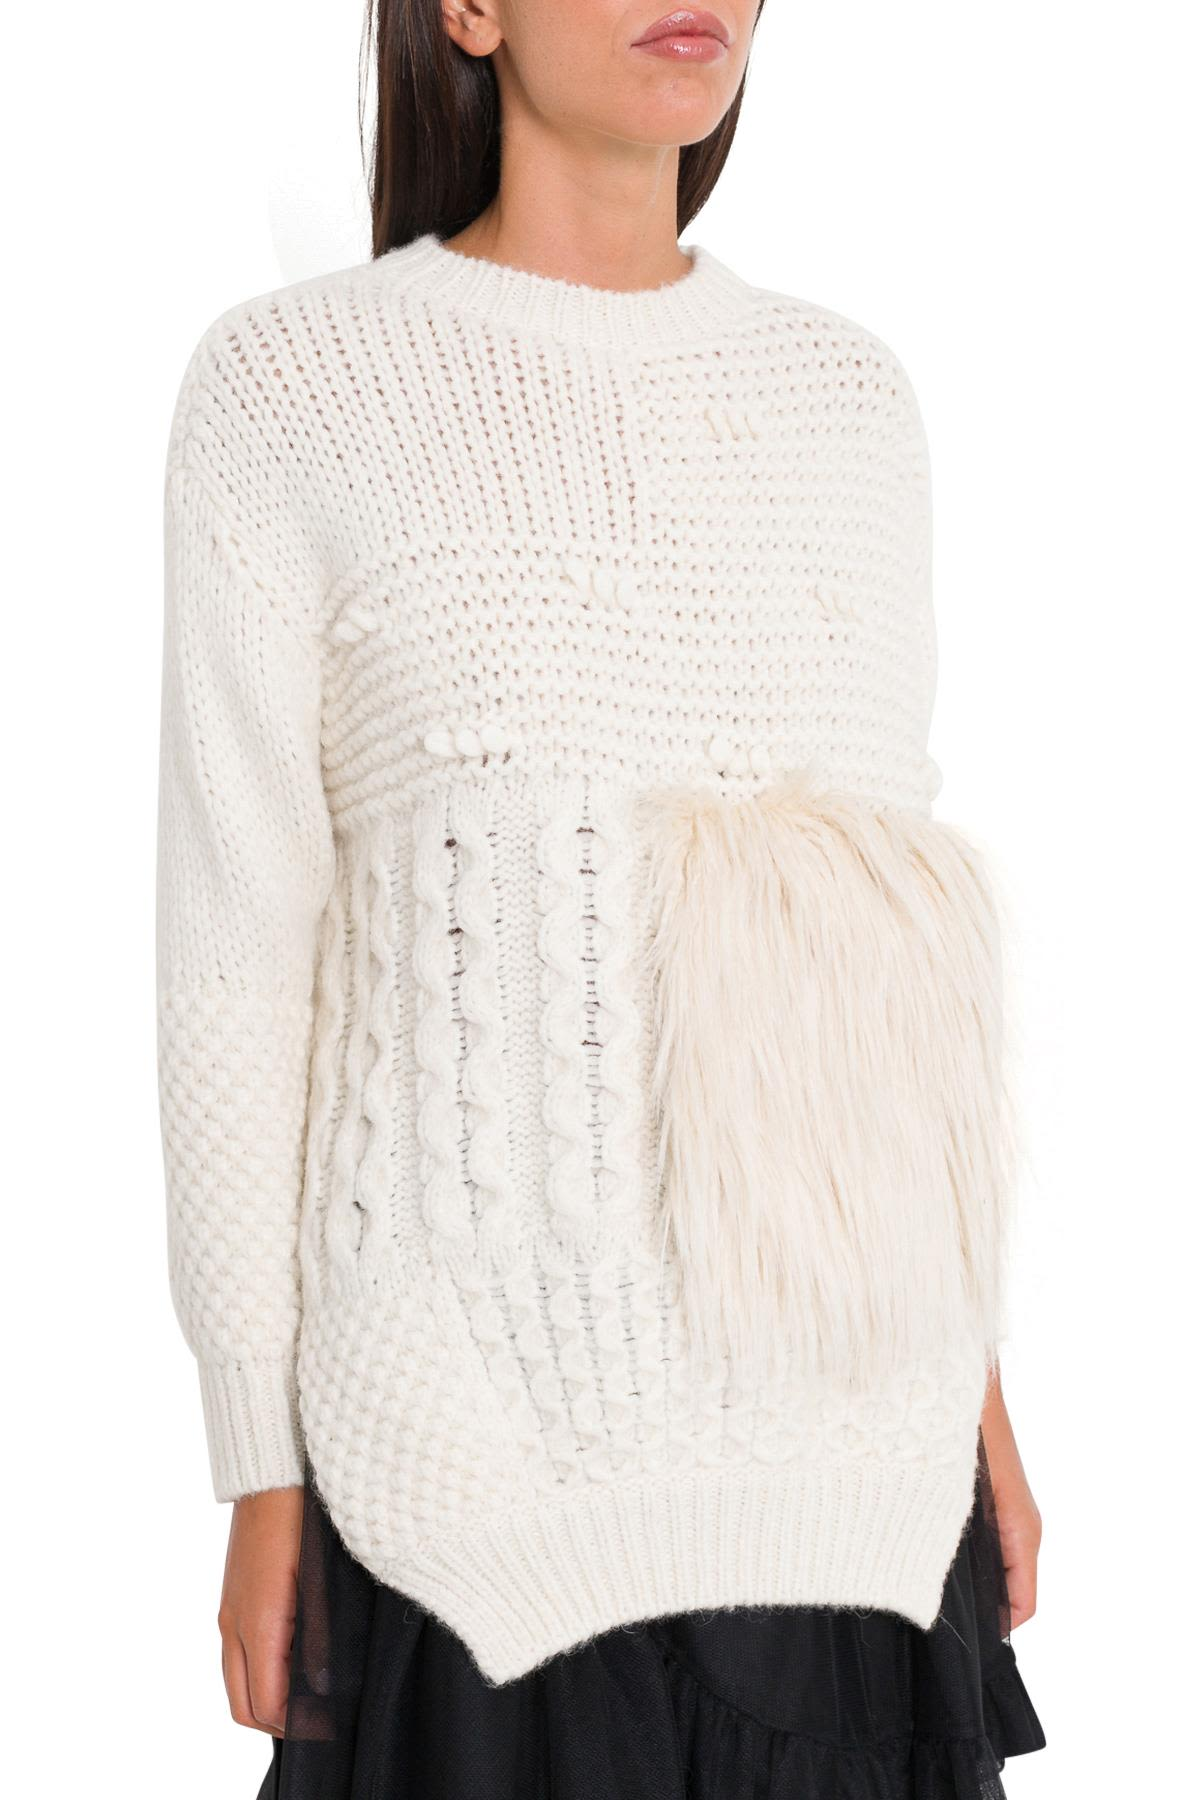 Simone Rocha Patchwork Sweater